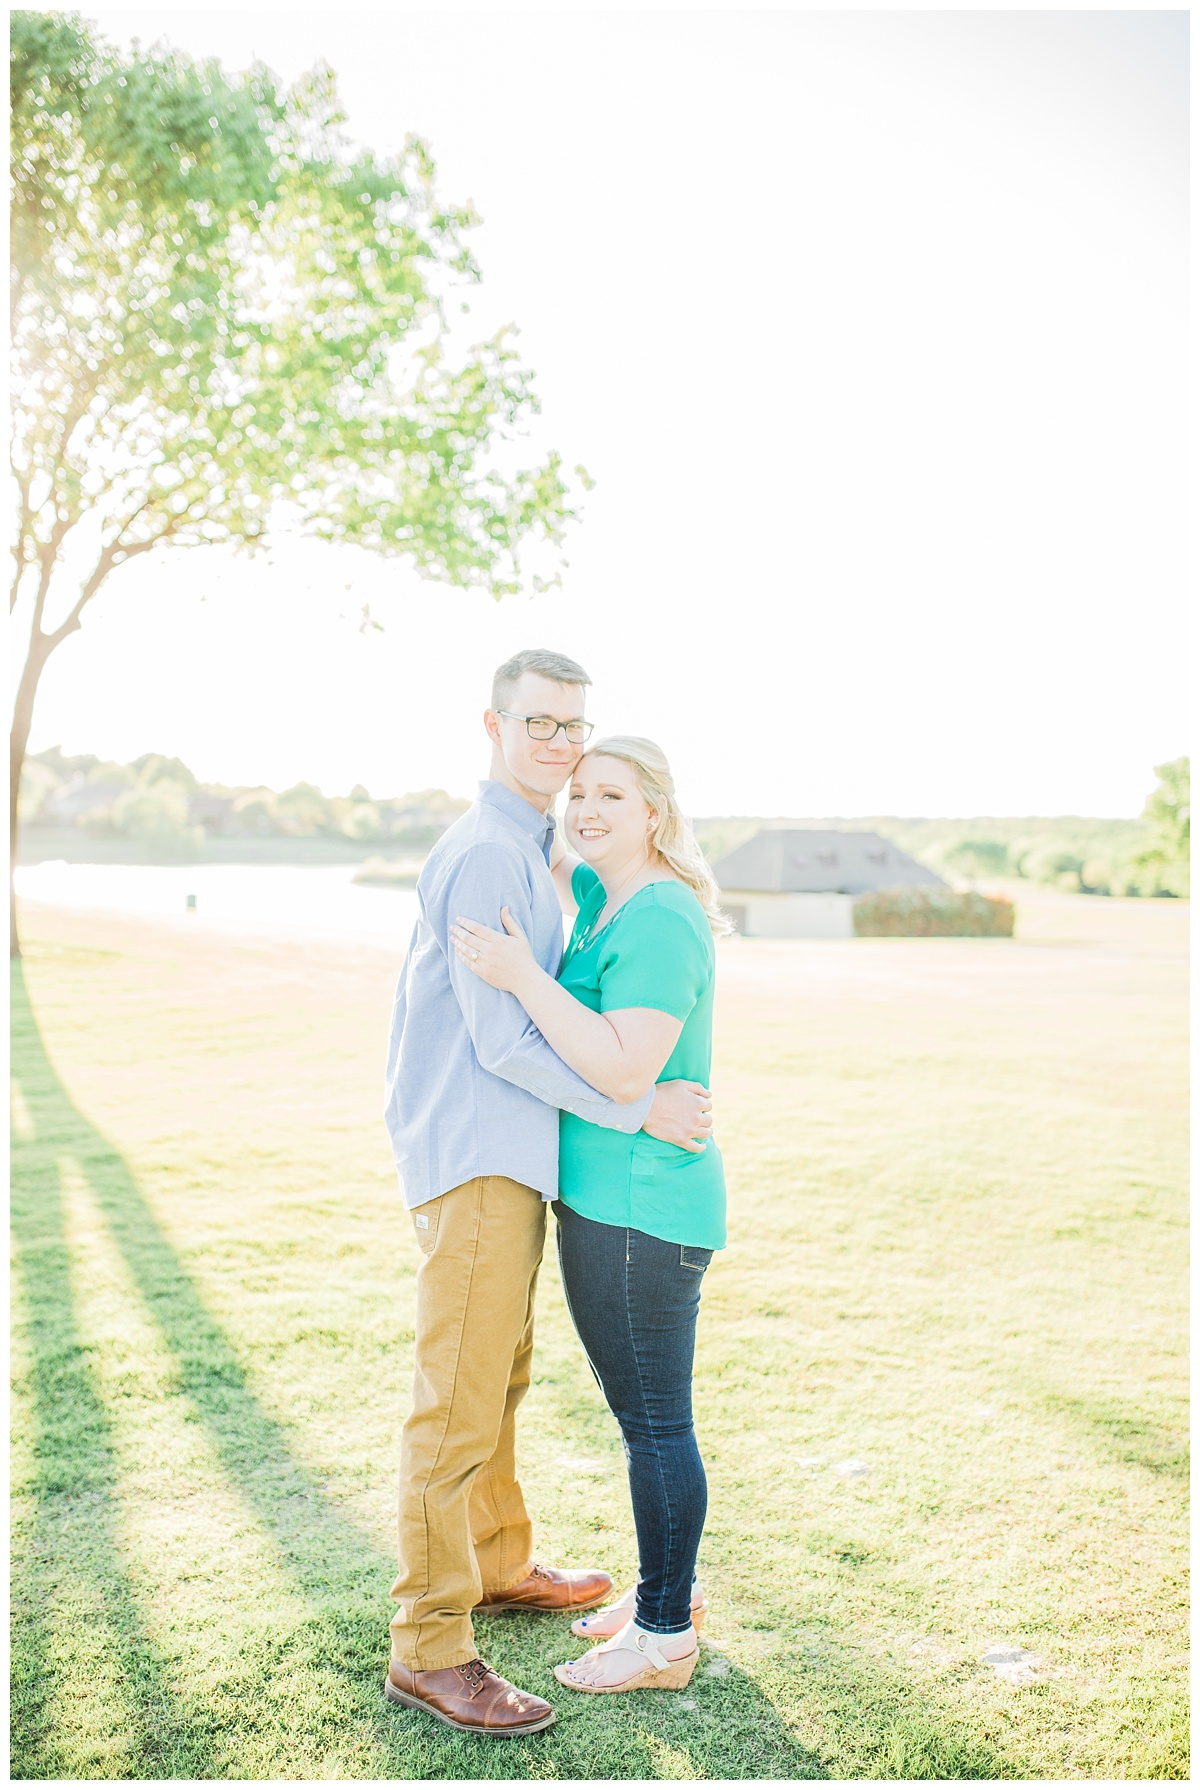 Trophy Club - Sunset - Engagement Pictures - Trophy Club Golf Course - Hannah Hays Photography - 2018 Engagement - 2019 Wedding